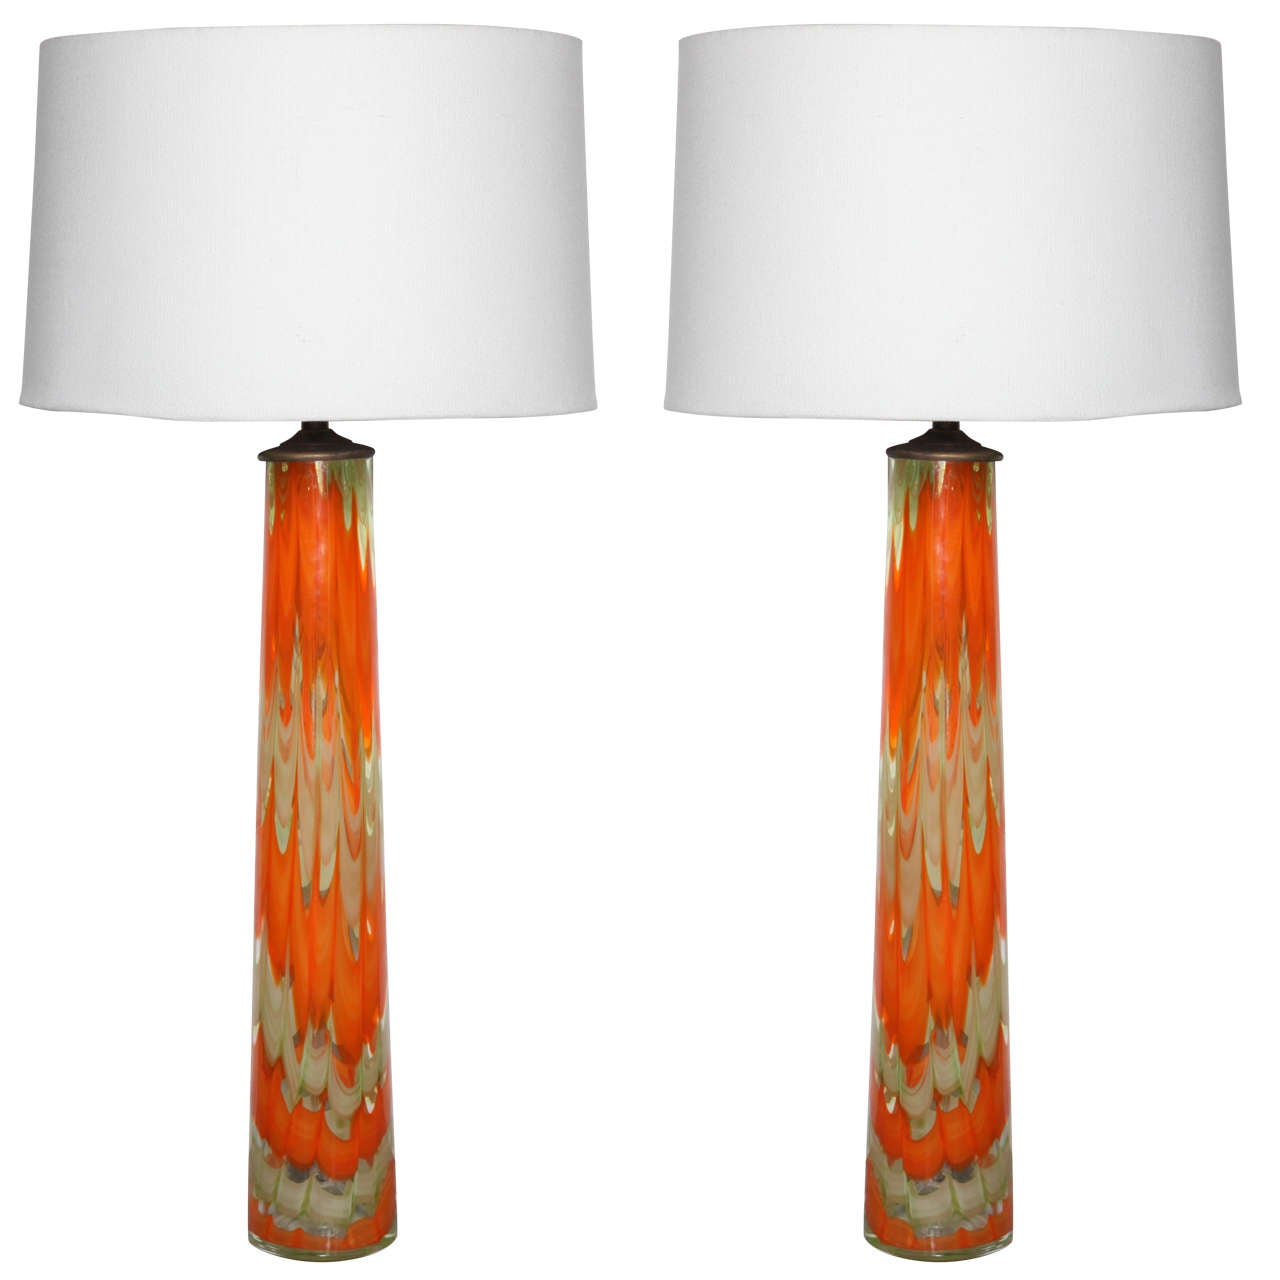 Pair Of Midcentury Orange And Frosted White Murano Glass